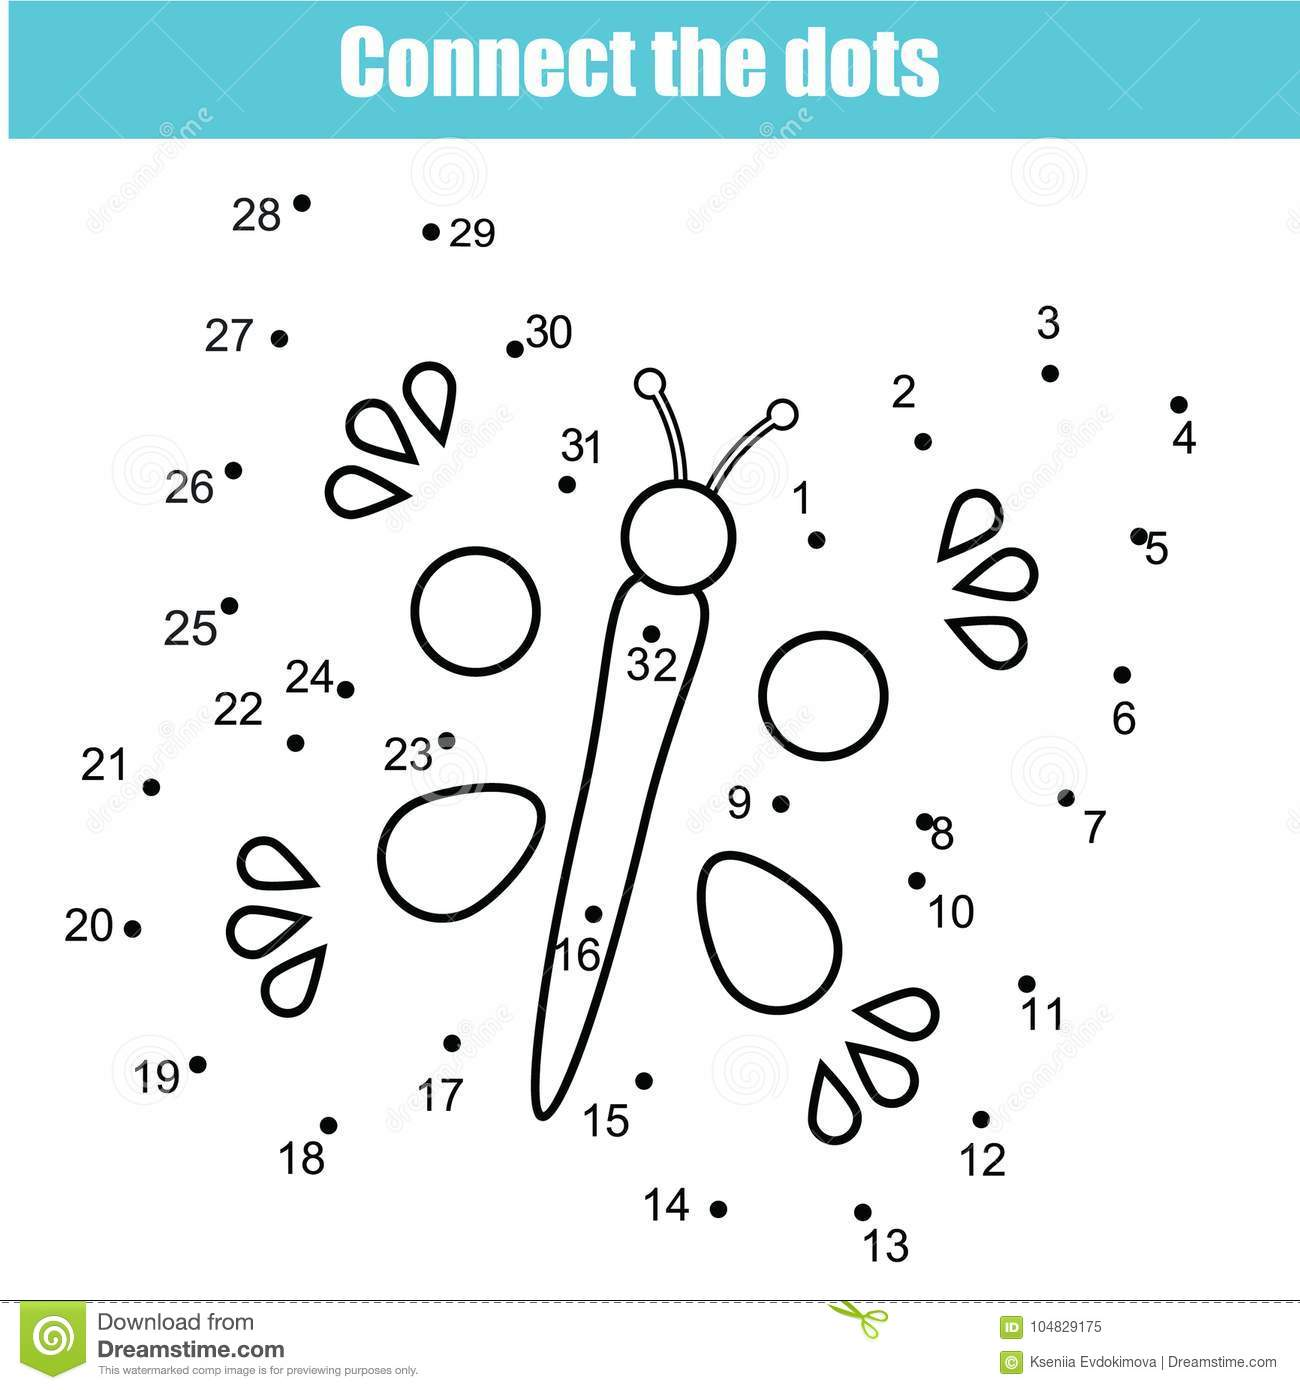 graphic about Connect the Dots Game Printable titled Converse The Dots Via Figures Young children Useful Sport